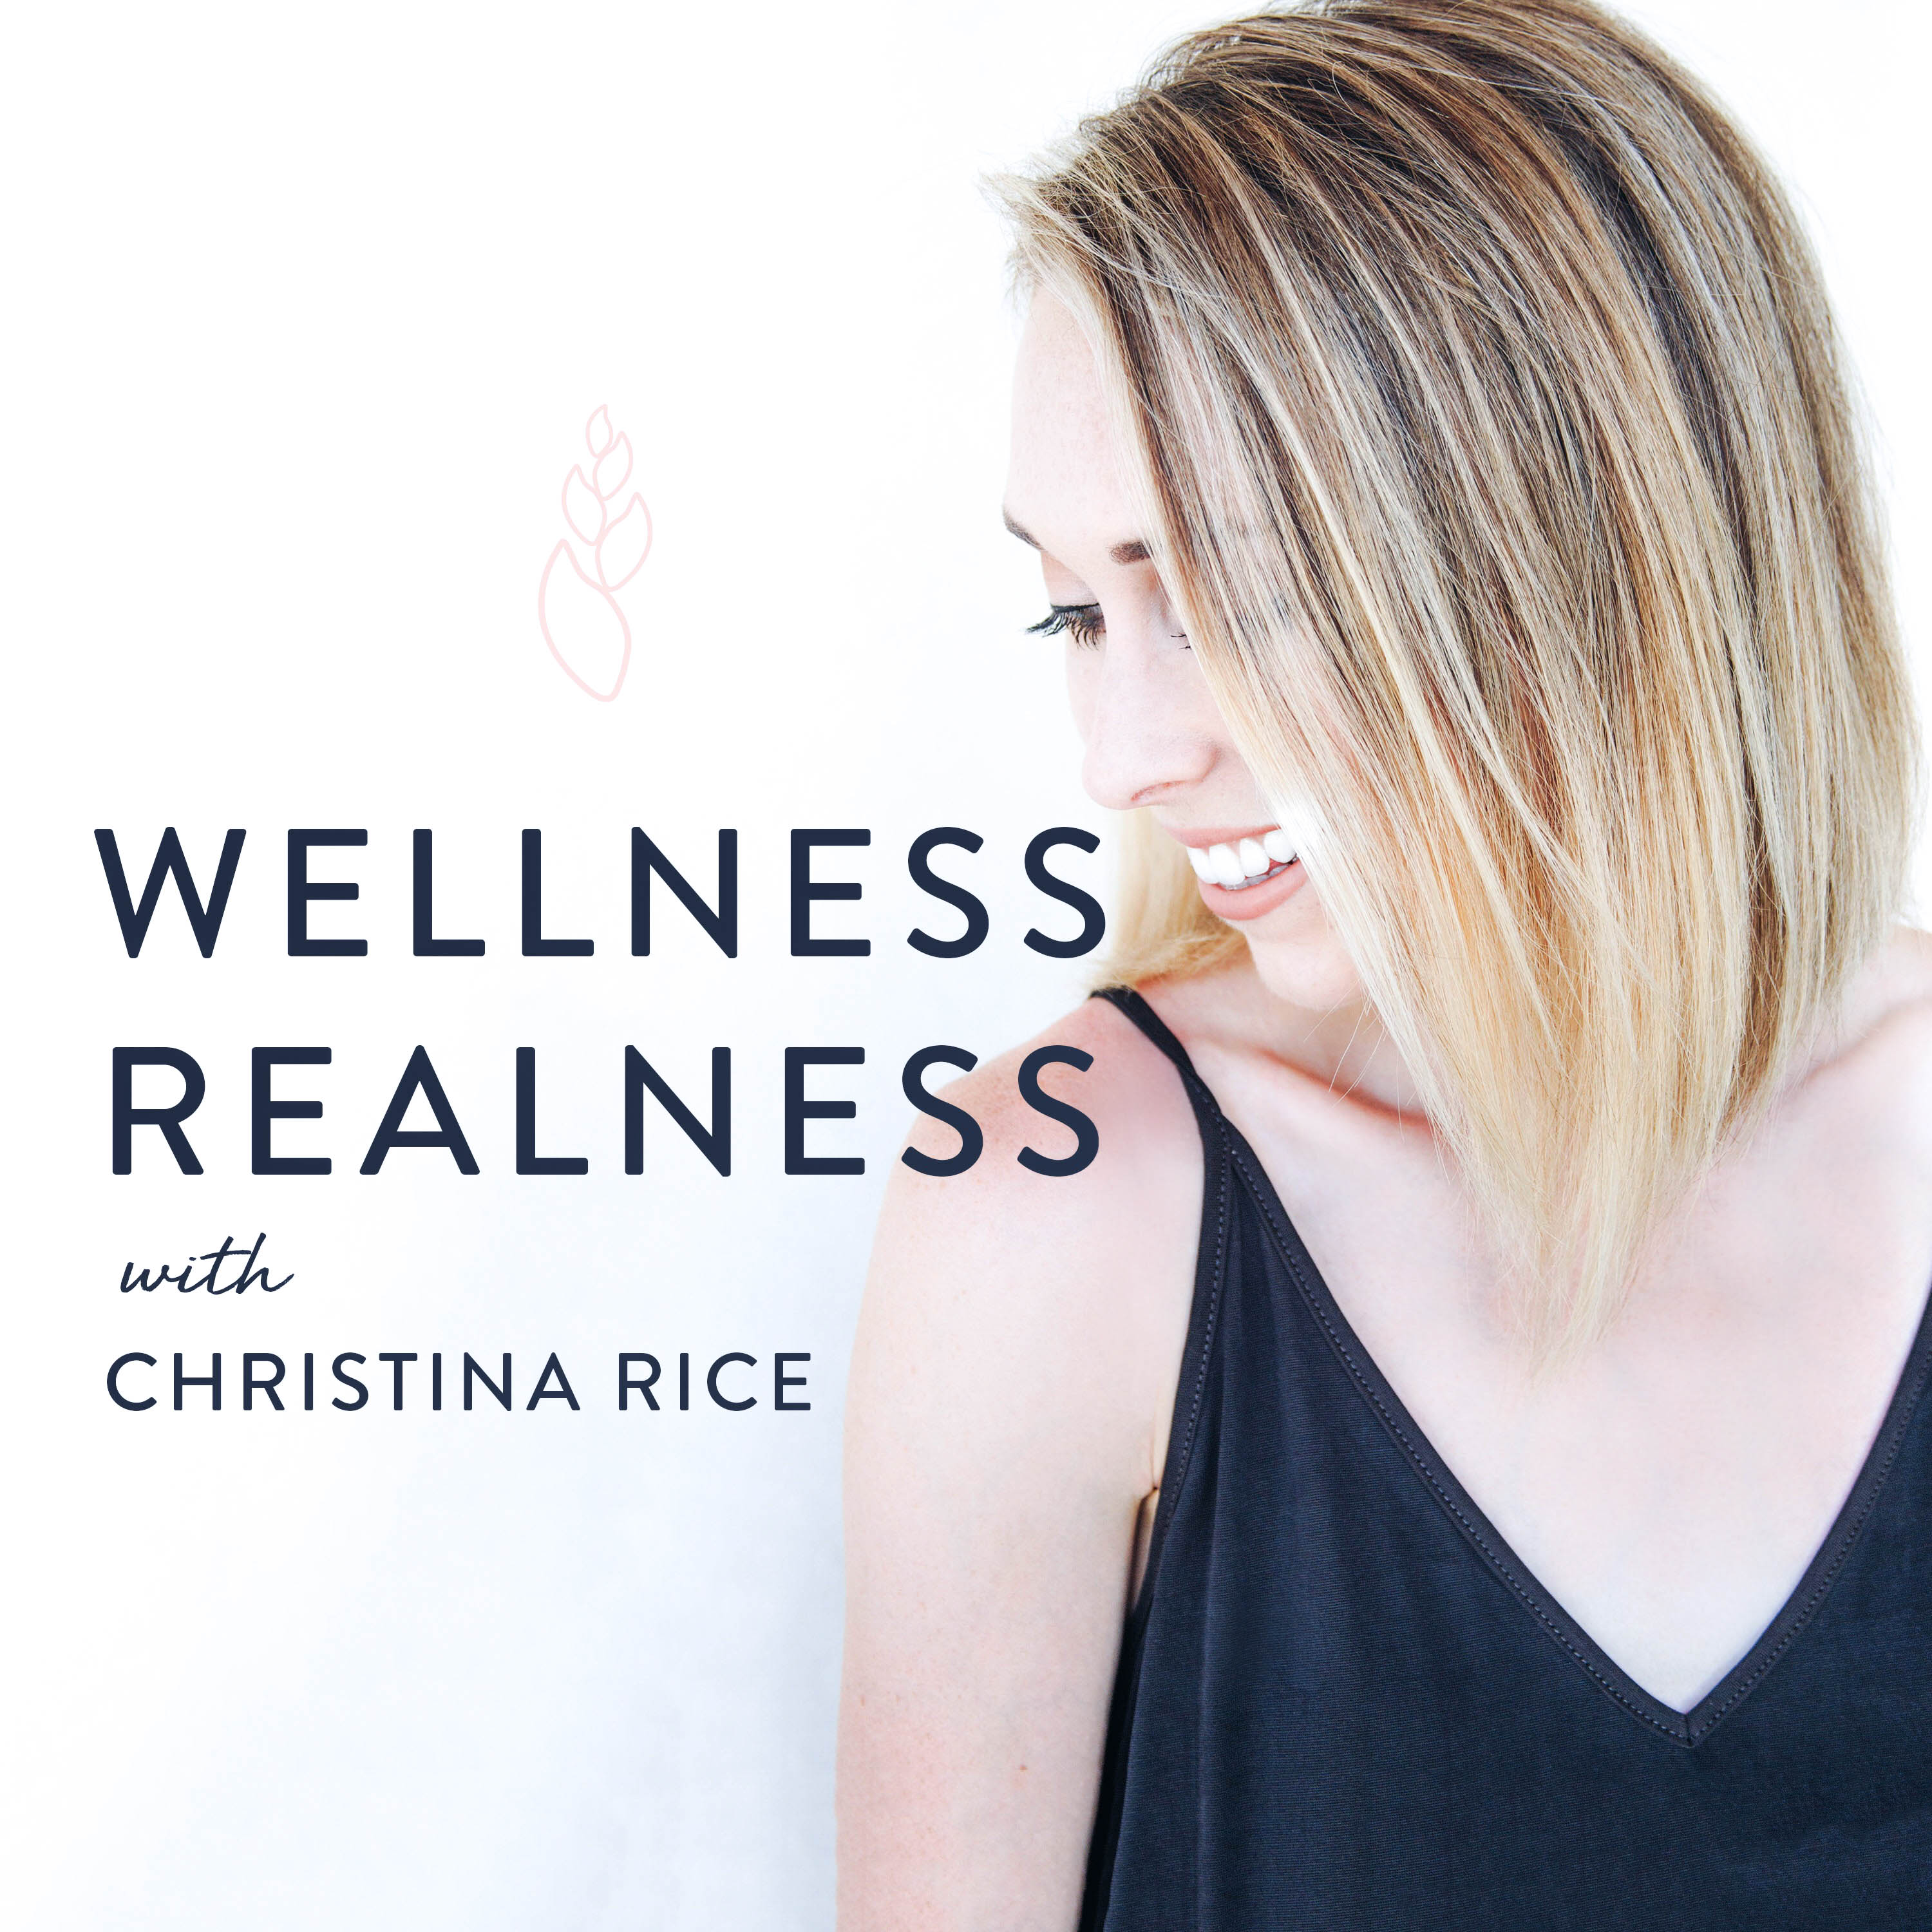 Wellness Realness: Health | Nutrition | Fitness | Lifestyle | Relationships